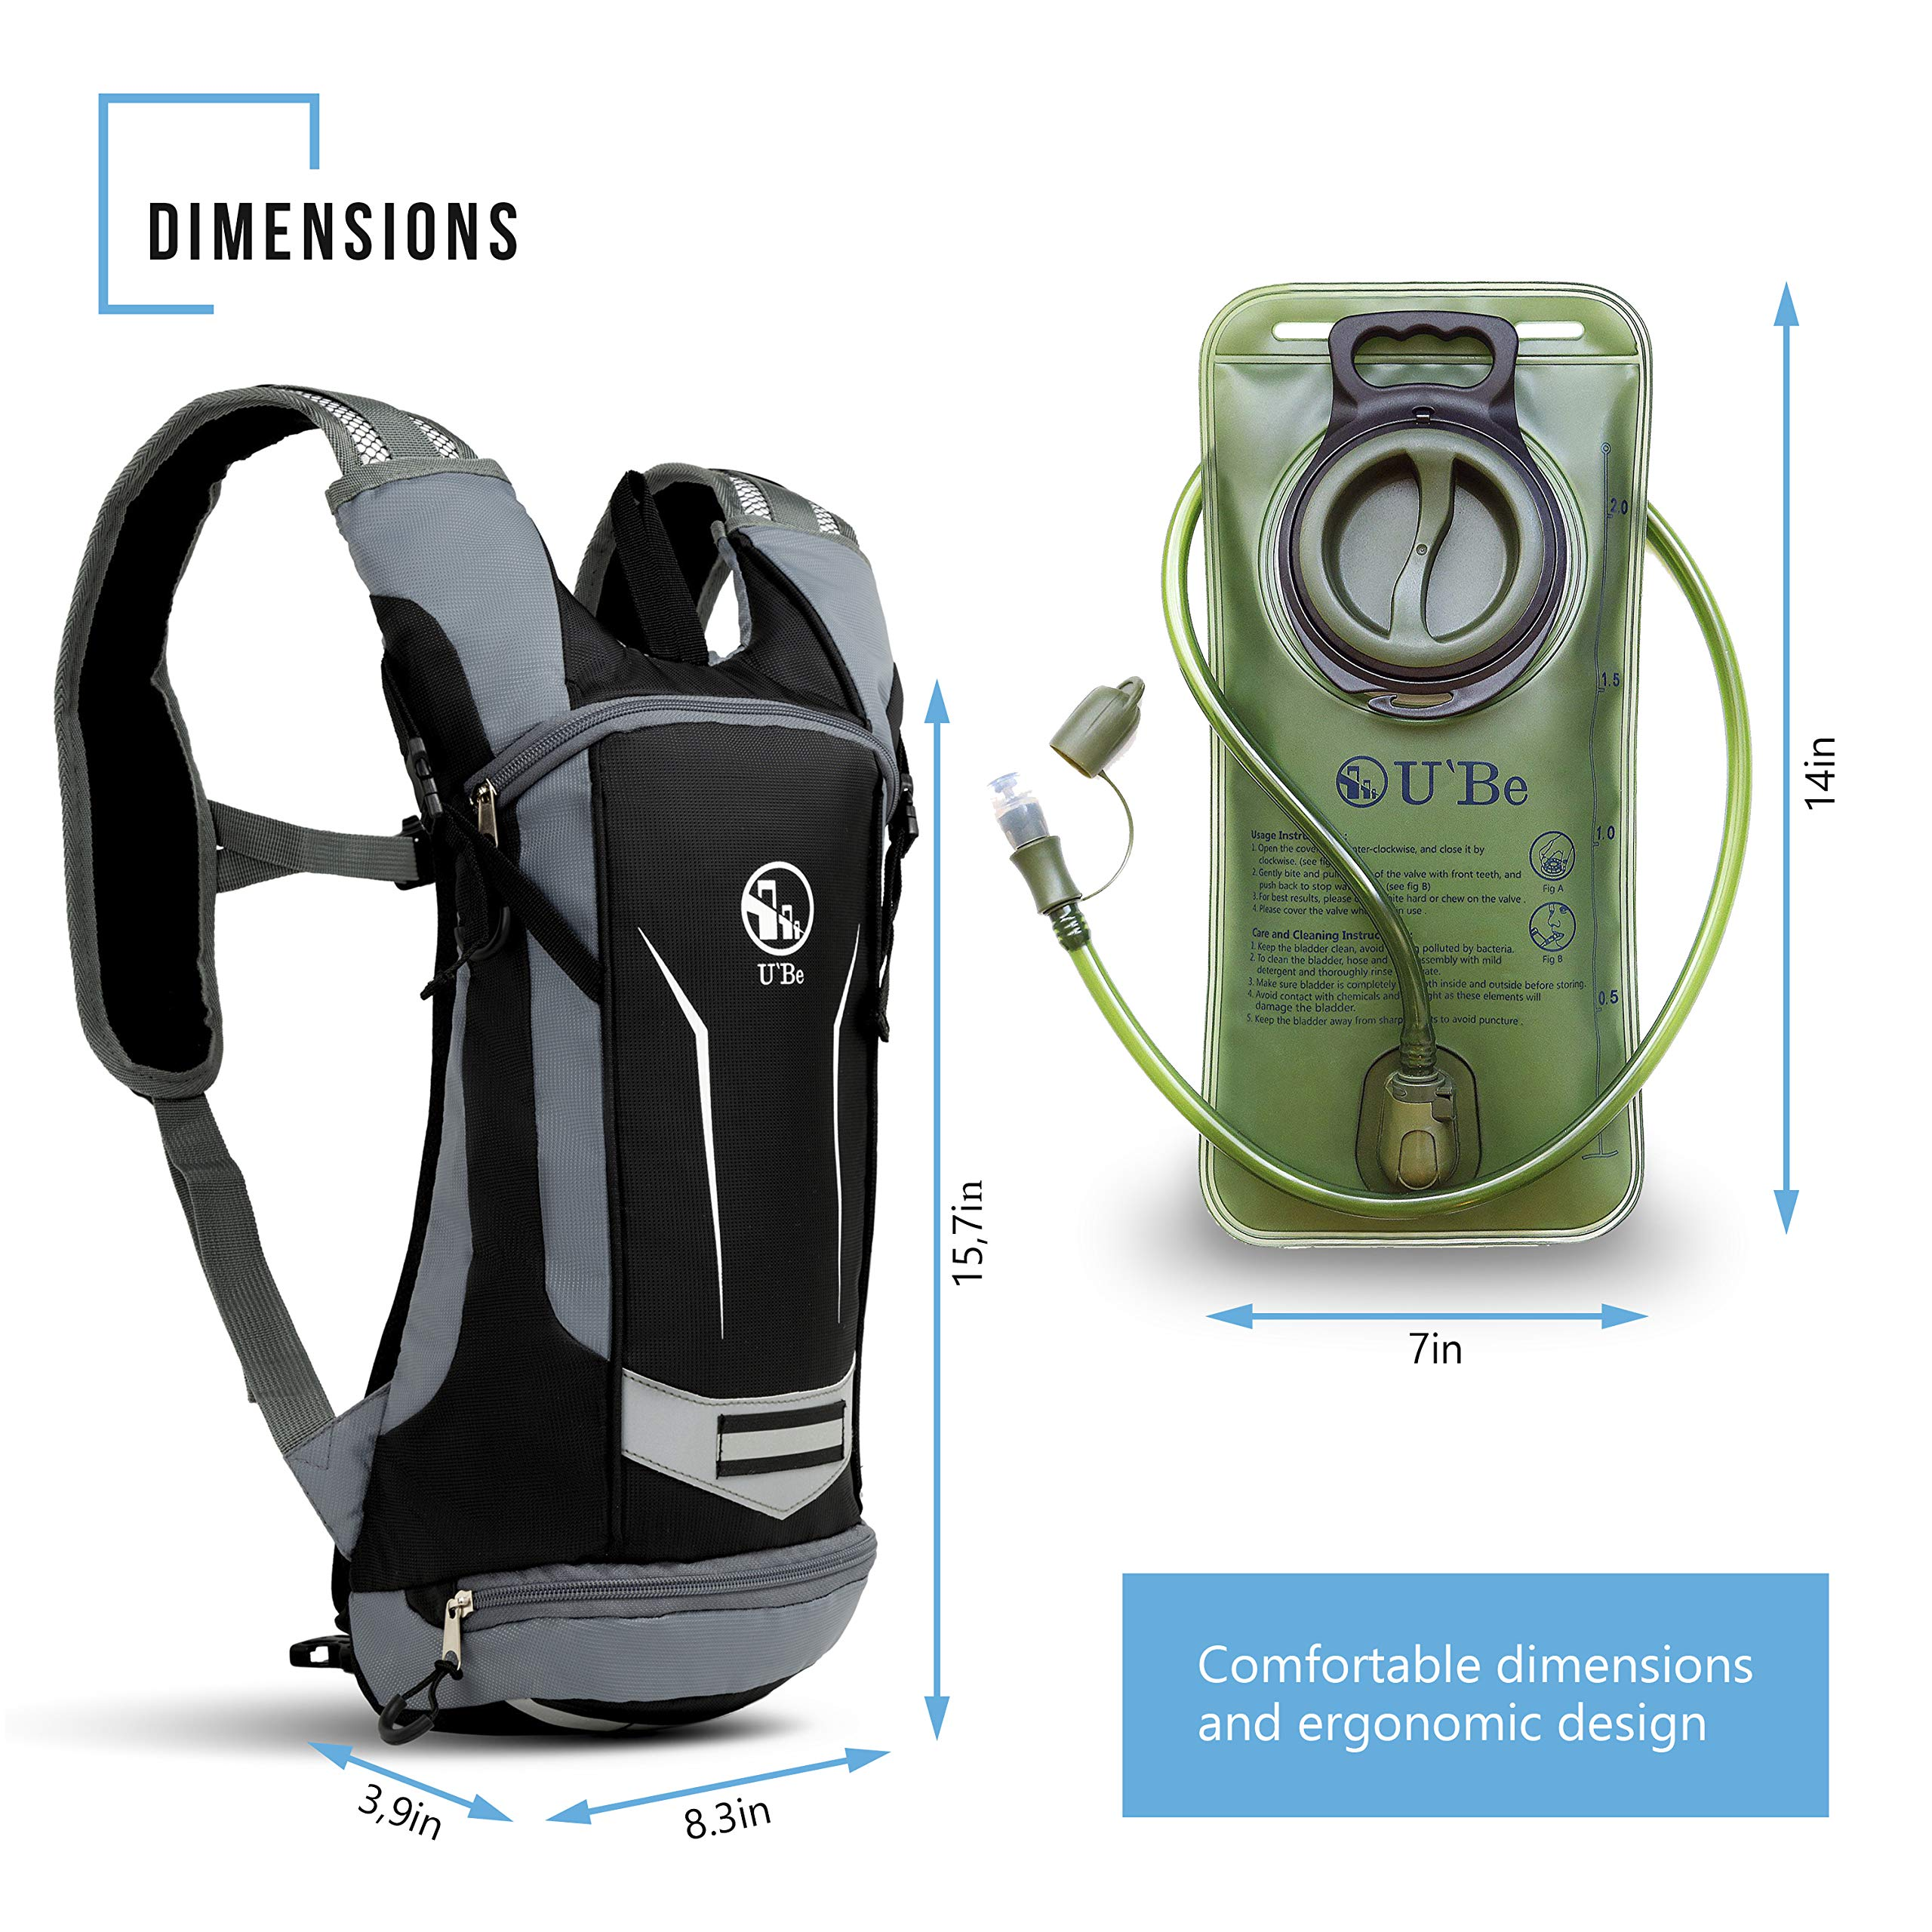 U`Be Hydration Pack - Hydration Backpack - Camel Pack Water Backpack with Insulated 2l Bladder for Women Men Kids Backpacking - Small Lightweight Water Reservoir for Running Hiking Cycling by U`Be (Image #4)